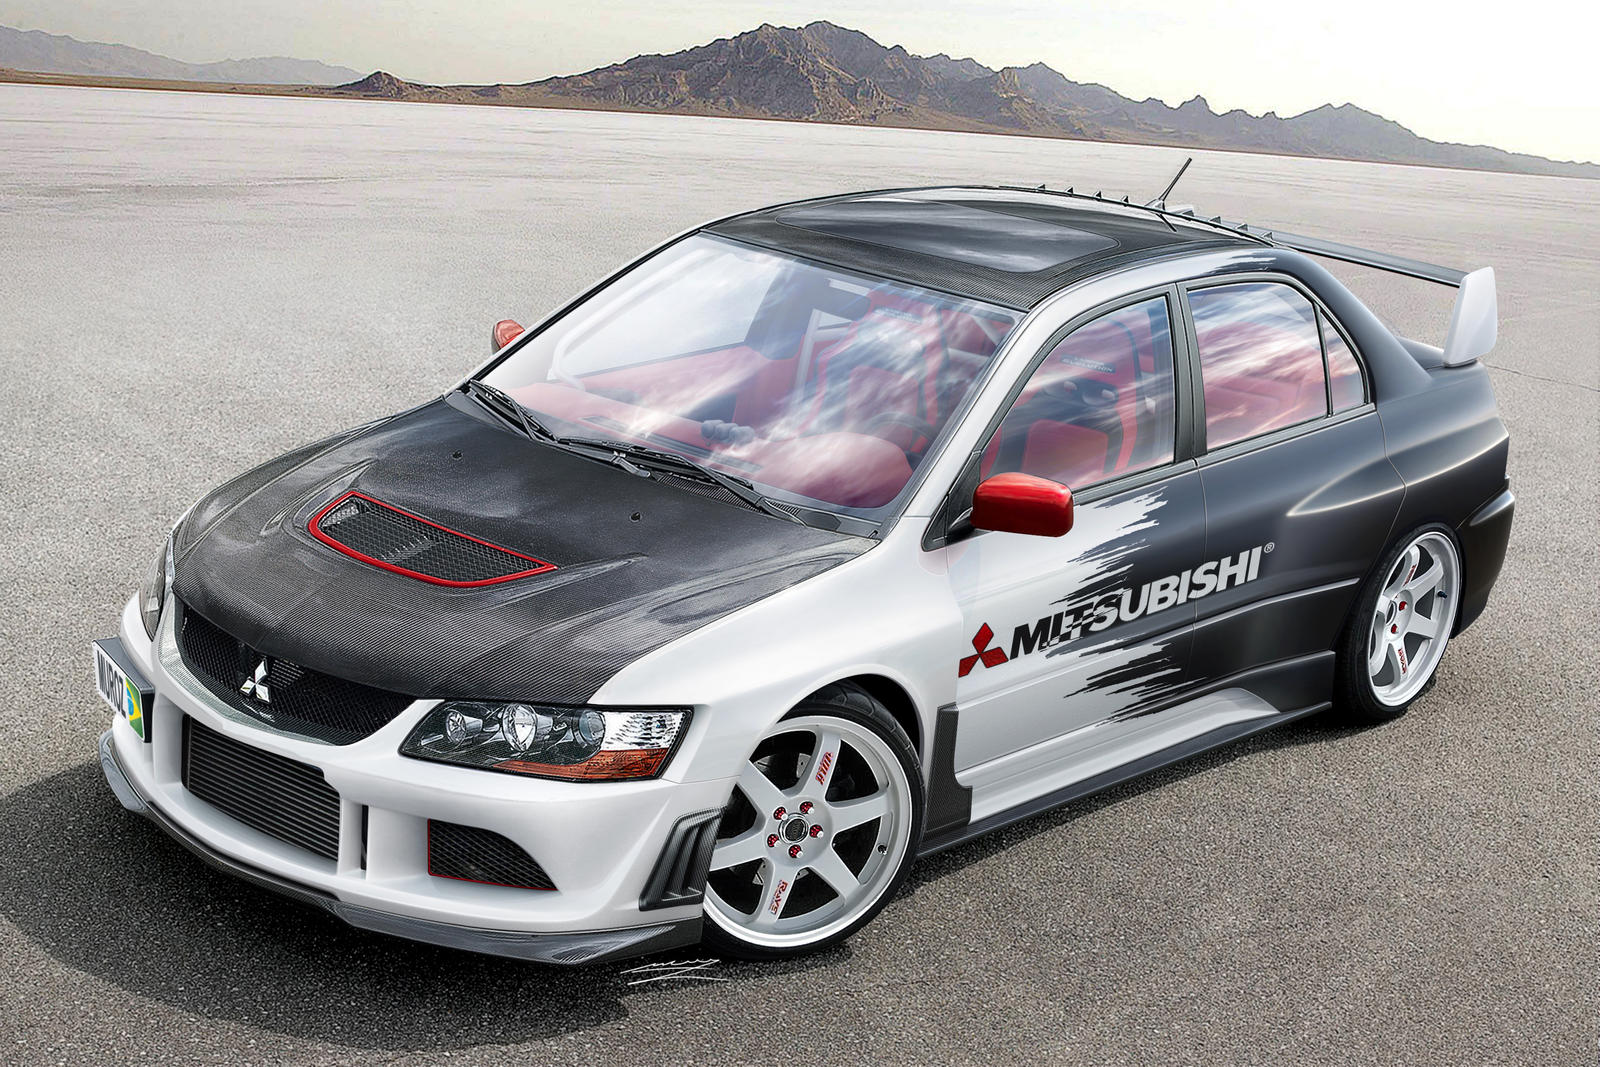 Mitsubishi Lancer Evolution by MurilloDesign